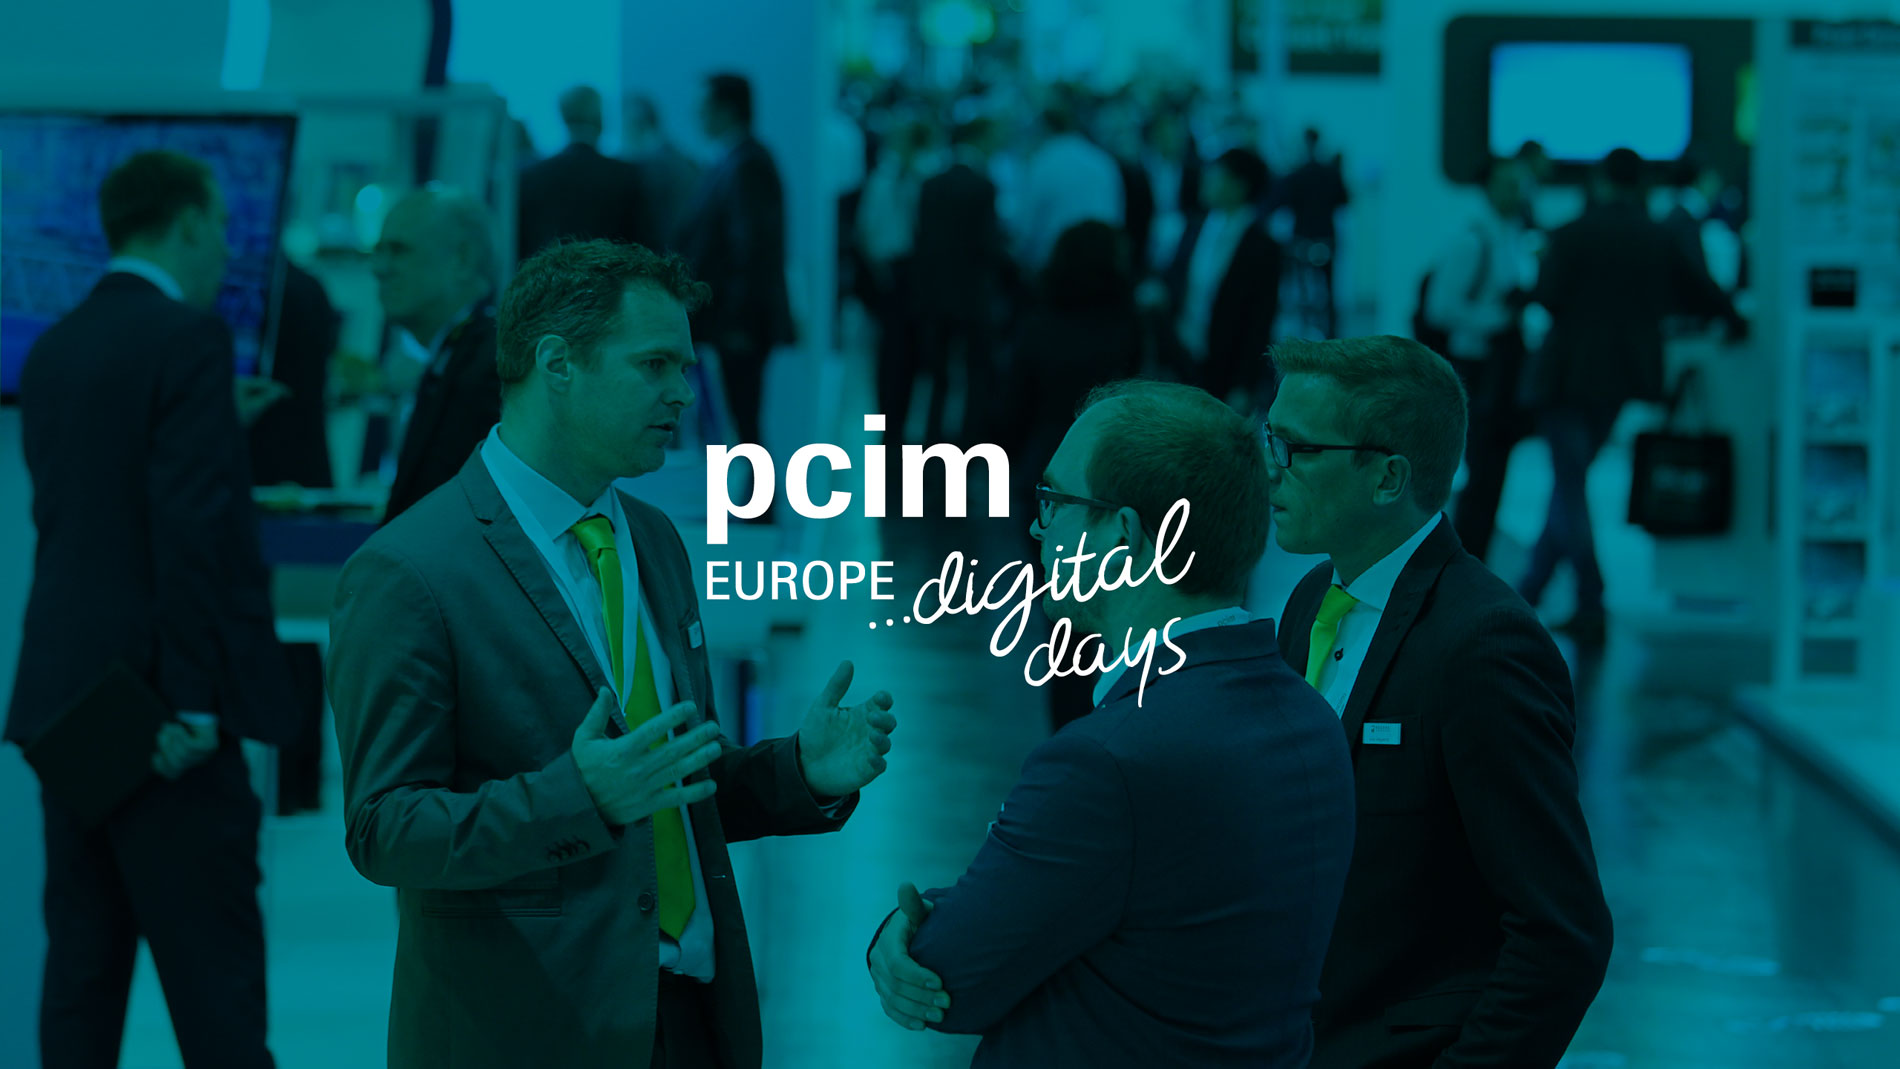 Review: PCIM Europe digital days 2020